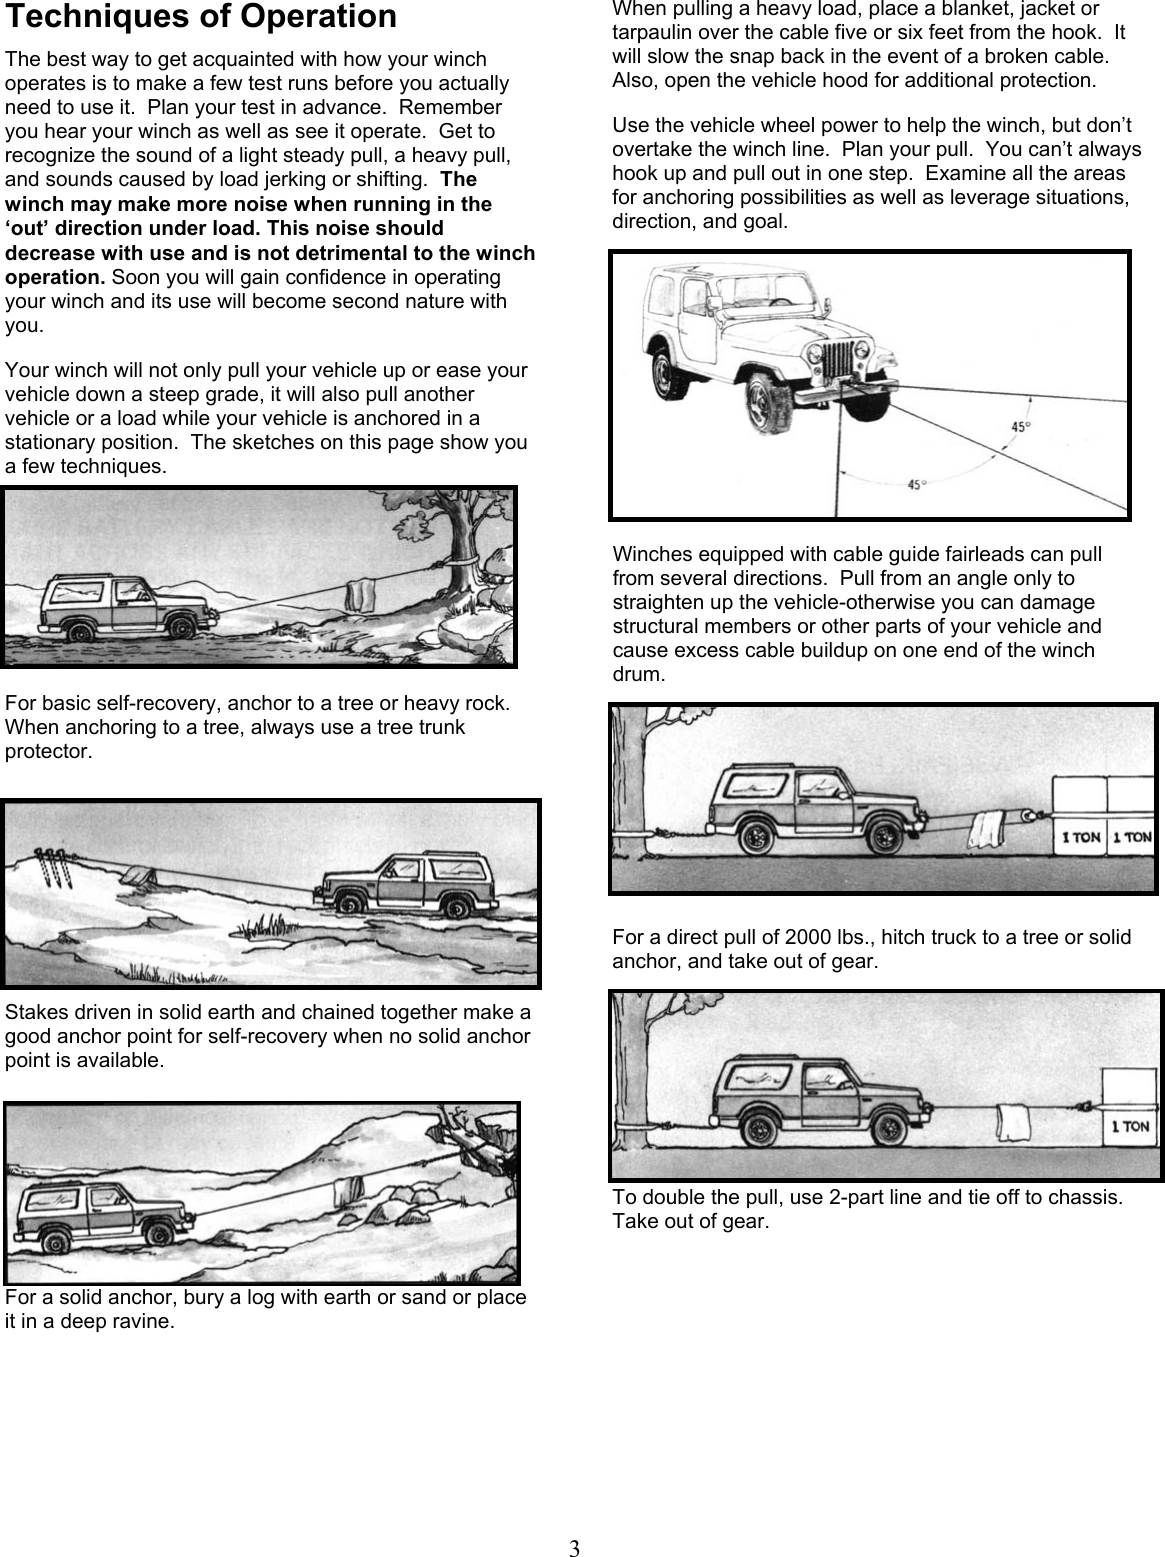 Mile Marker Recovery Winches Manual Guide